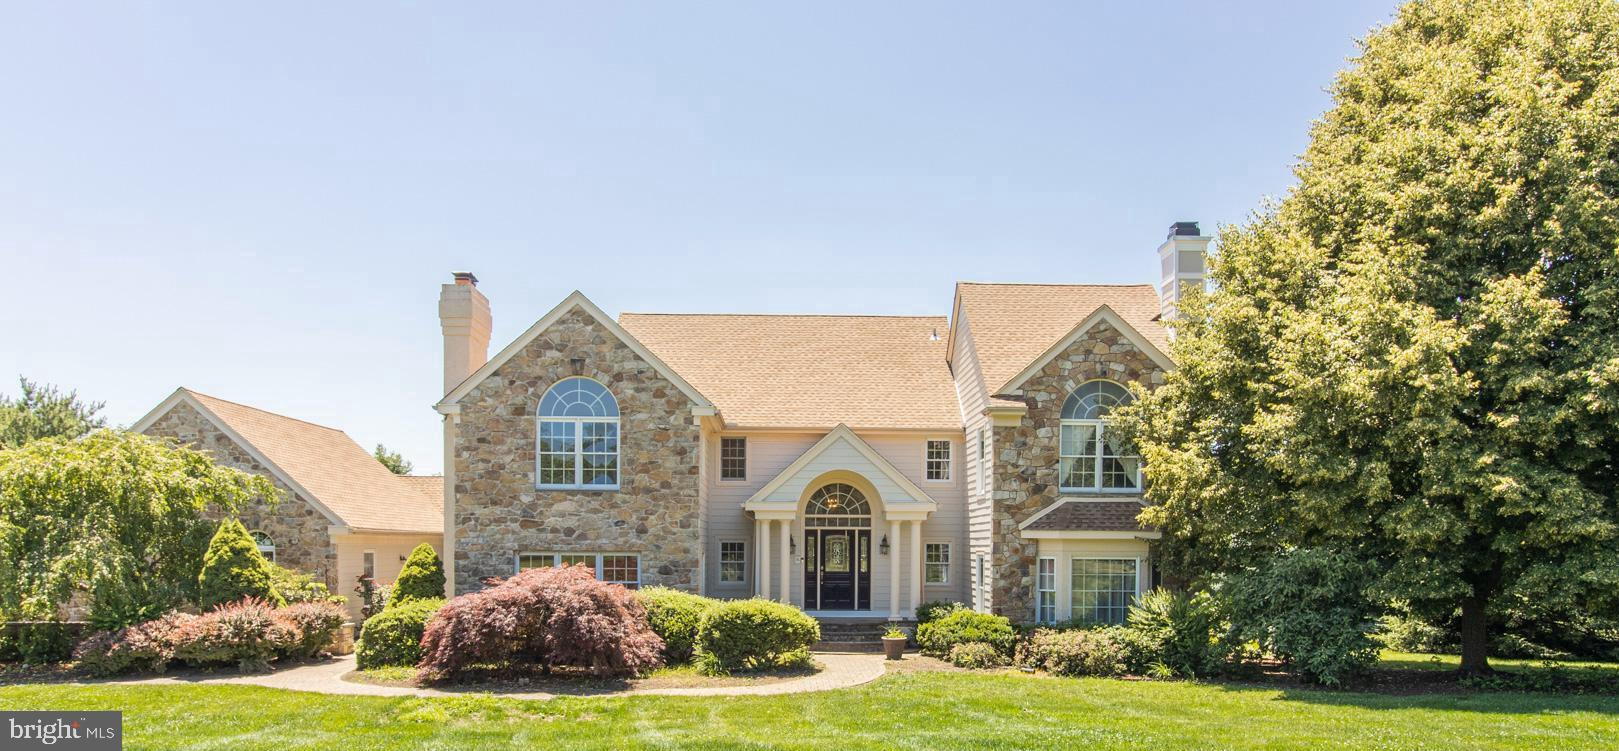 Timeless & Classic describes this Estate styled beauty. Loaded with  every amenity and convenience you have been searching for in a home. This home has a first and second floor owner suite. Enter the home into the raised entry foyer where you'll enjoy the view of the open two story family room highlighted by the two story stone fireplace that is currently gas burning but can be converted to wood burning. Another great feature is the  wet bar and hardwood floors. A few steps away is the oversized eat in kitchen with million dollar views of the back yard space. Large number of oak cabinetry and a huge wrap around two tiered corian countertop, a wonderful appliance package and exits to a beautiful courtyard.  The dining room  trim package includes crown molding and wainscoting that can be made more private behind french doors. This room's other great feature is the private exit-way to the courtyard, perfect for enjoying a meal outside. Looking for a 1st floor Owners Suite? The search is over! This huge 22x22 Owner's Suite offers a walk-in closet, garden spa tub and huge walk-in shower and double door access to the rear deck. Just the retreat suite you dream of.  The parlor/living room features crown molding, wood burning fireplace and lots of natural light , and to top off the first floor you have a large office or den with a gas fireplace.  Another wonderful upgrade design is the  first floor laundry room with built-in cabinets. The second floor boasts 4 large bedrooms and 3 baths and features cathedral ceilings, huge closets. Additional bonus storage is the access to the attic.  The full unfinished basement offers a walk out door to the back yard and tons of natural daylight.  The future opportunities for this space  are endless .  Other features: New exterior renovations made with stone and Hardie Plank siding with bluestone flagstone accents. 10 year transferable warranty from the time the home transfers from current homeowner. Upgraded install features were done t